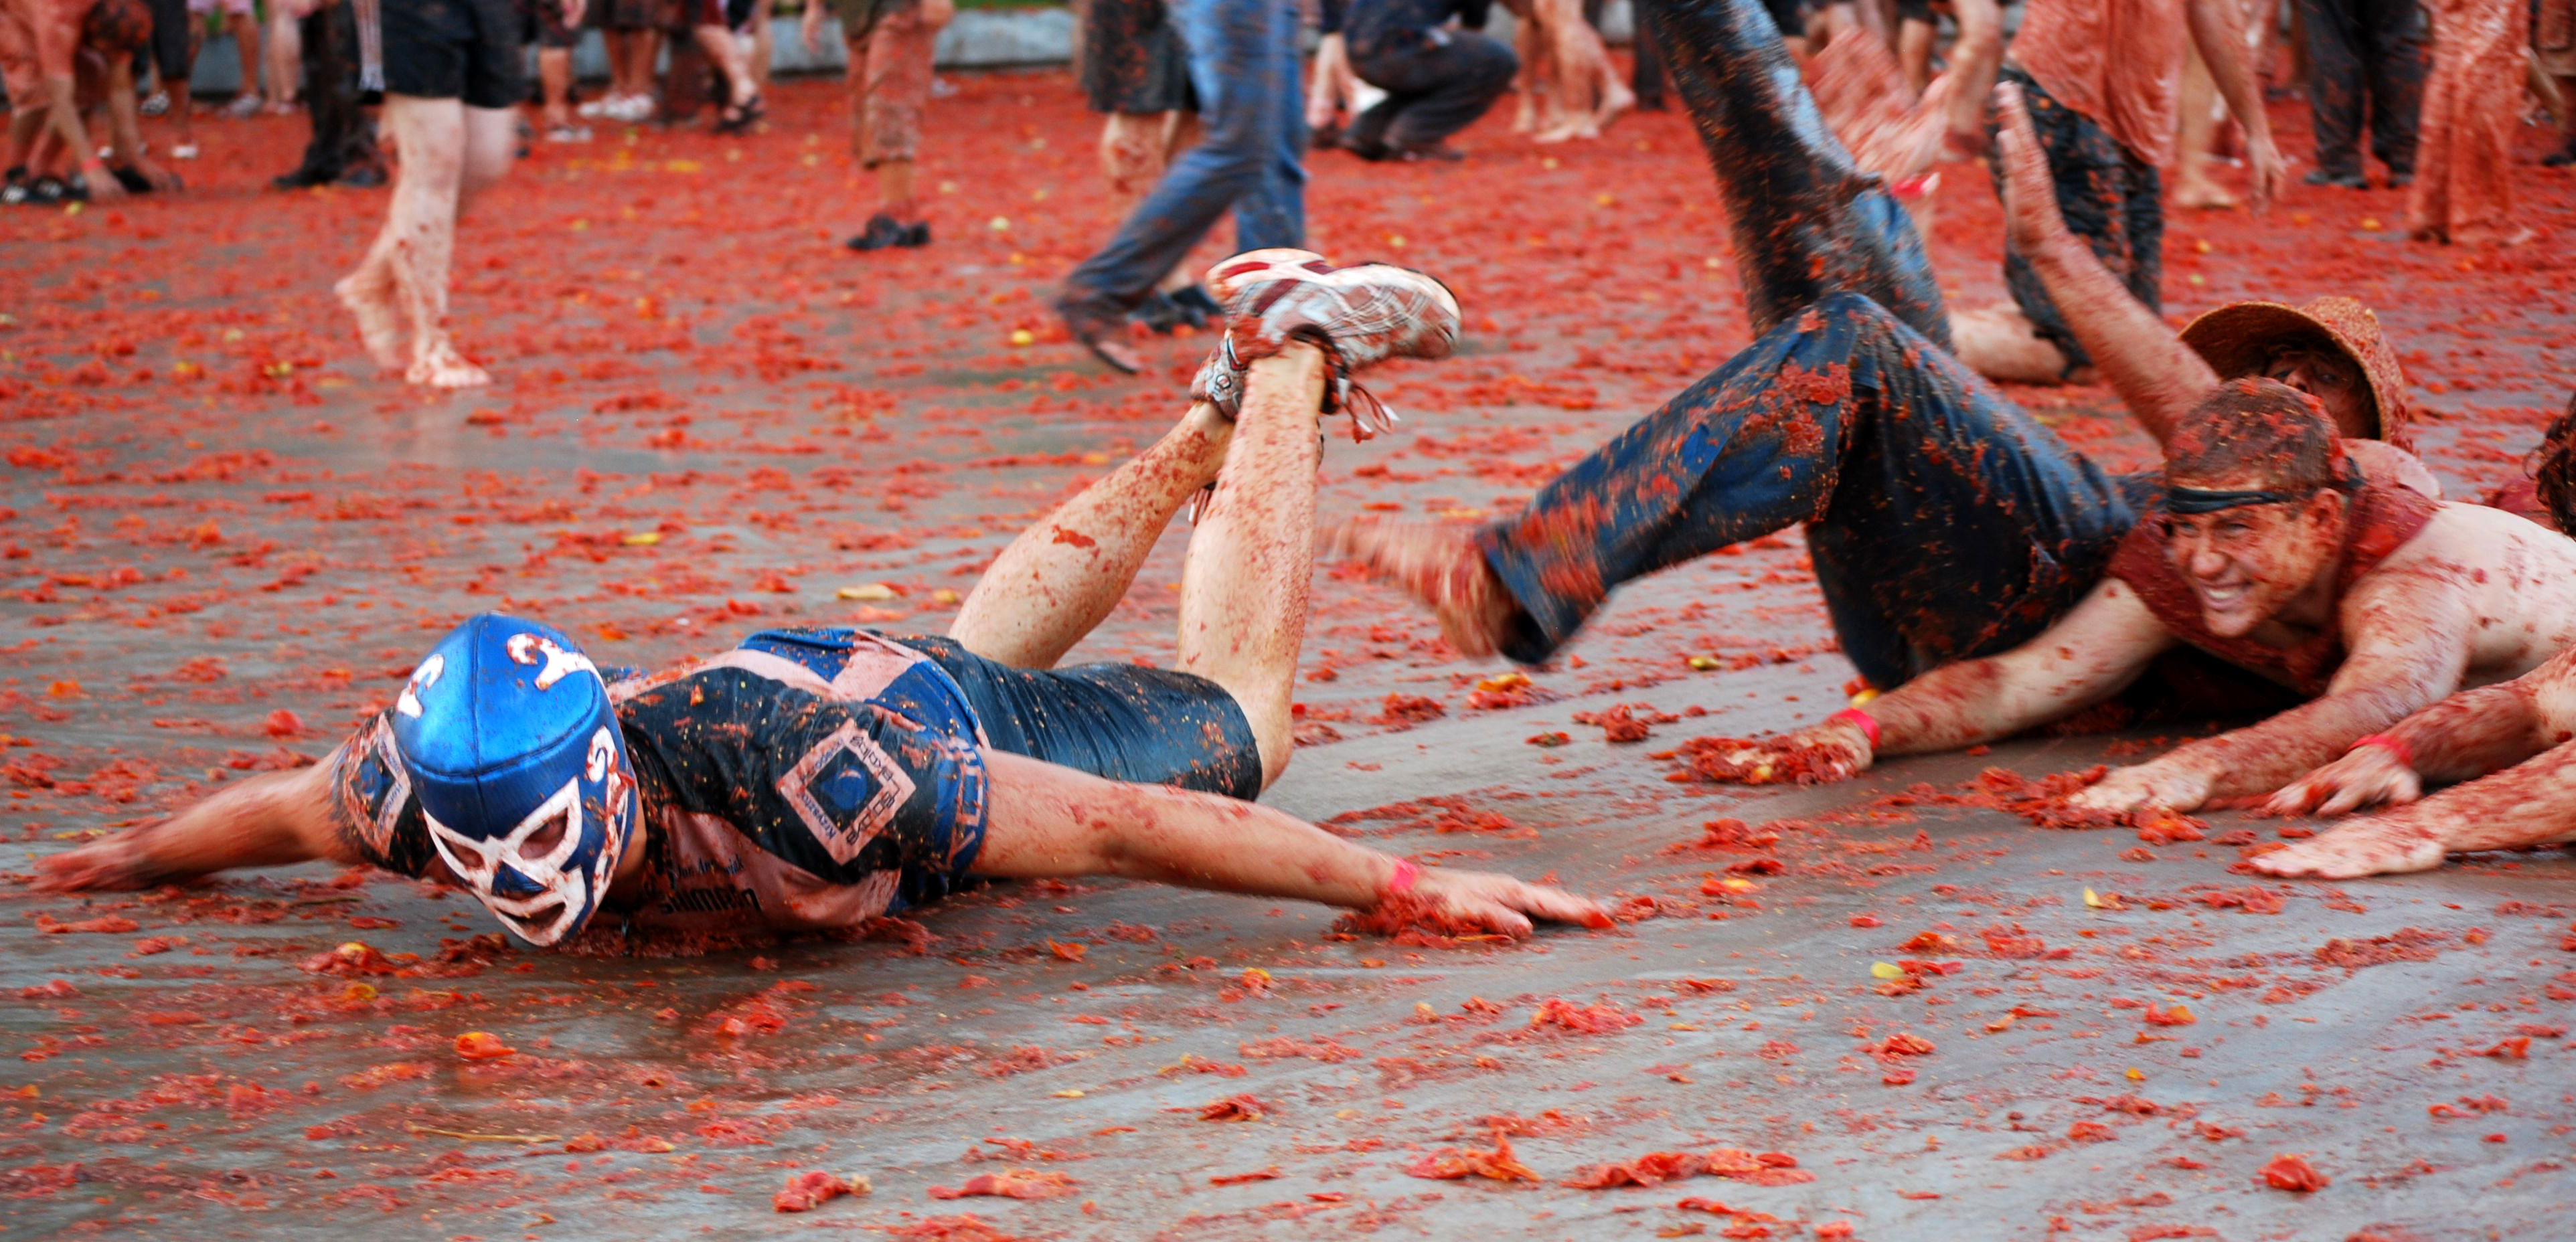 La Tomatina has helped put Buñol on the map. Photo courtesy Aaron S.